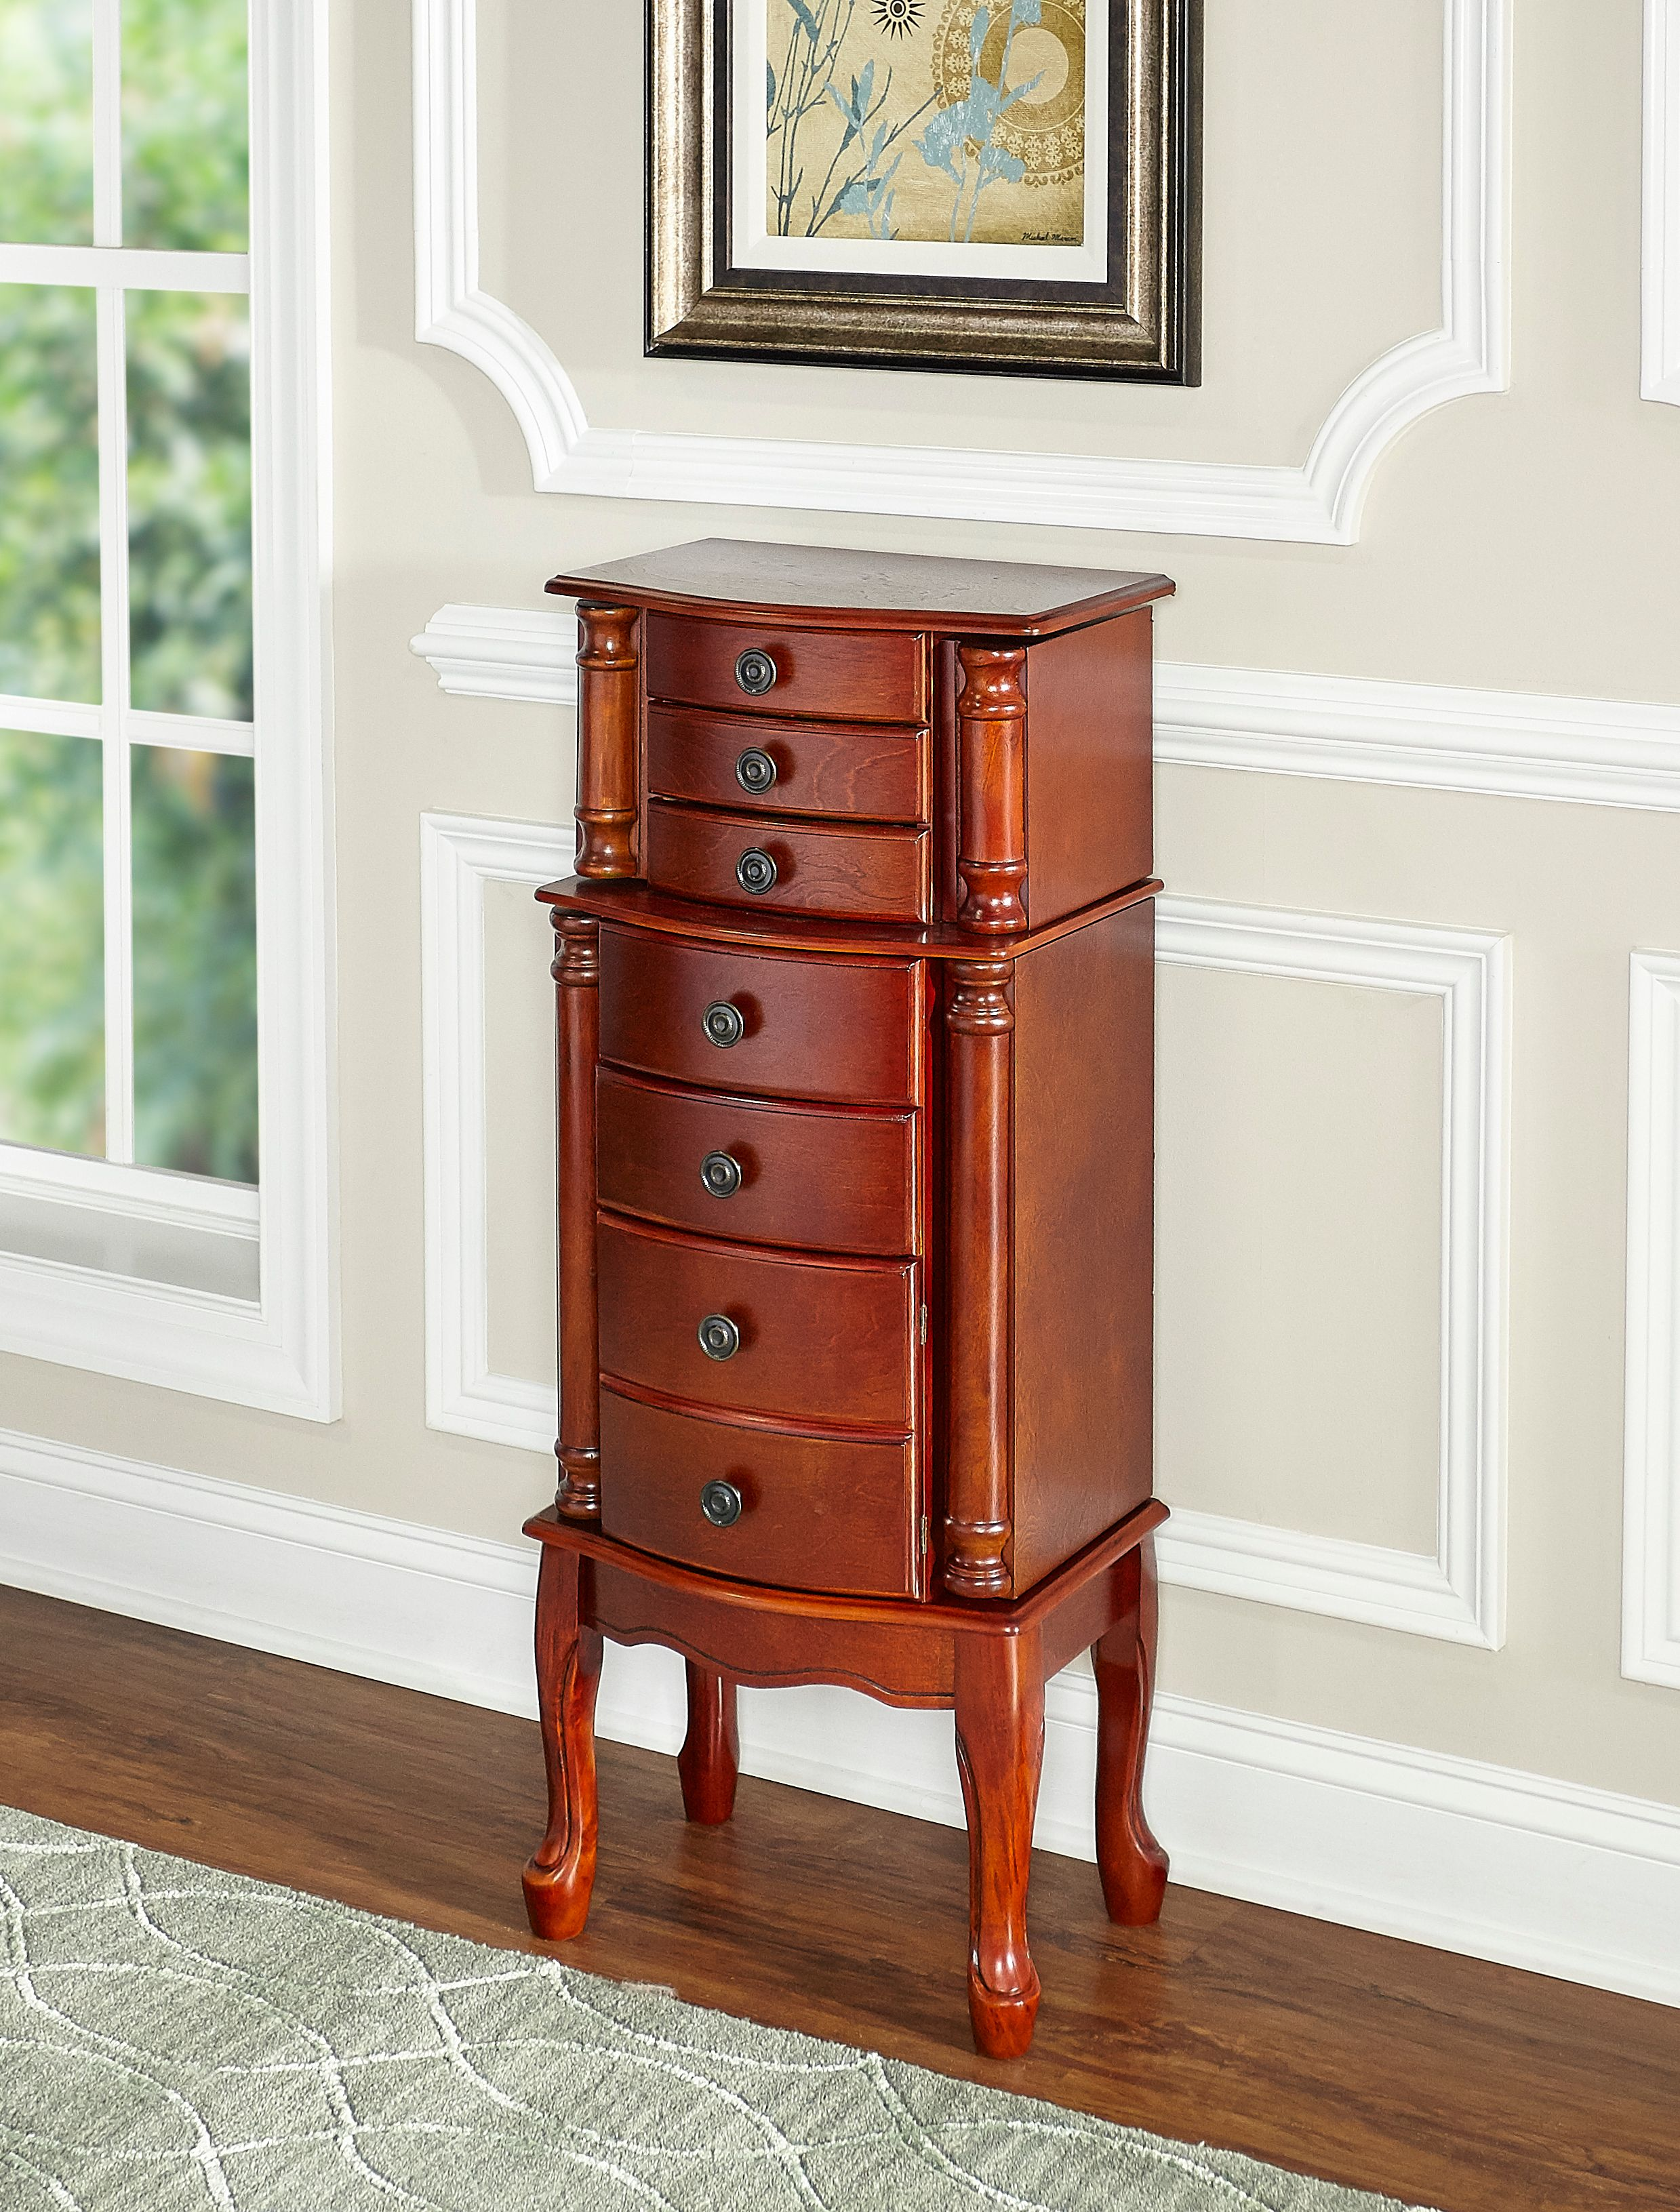 Stand Up Jewelry Box Walmart : stand, jewelry, walmart, Powell, Classic, Cherry, Jewelry, Armoire, Walmart.com